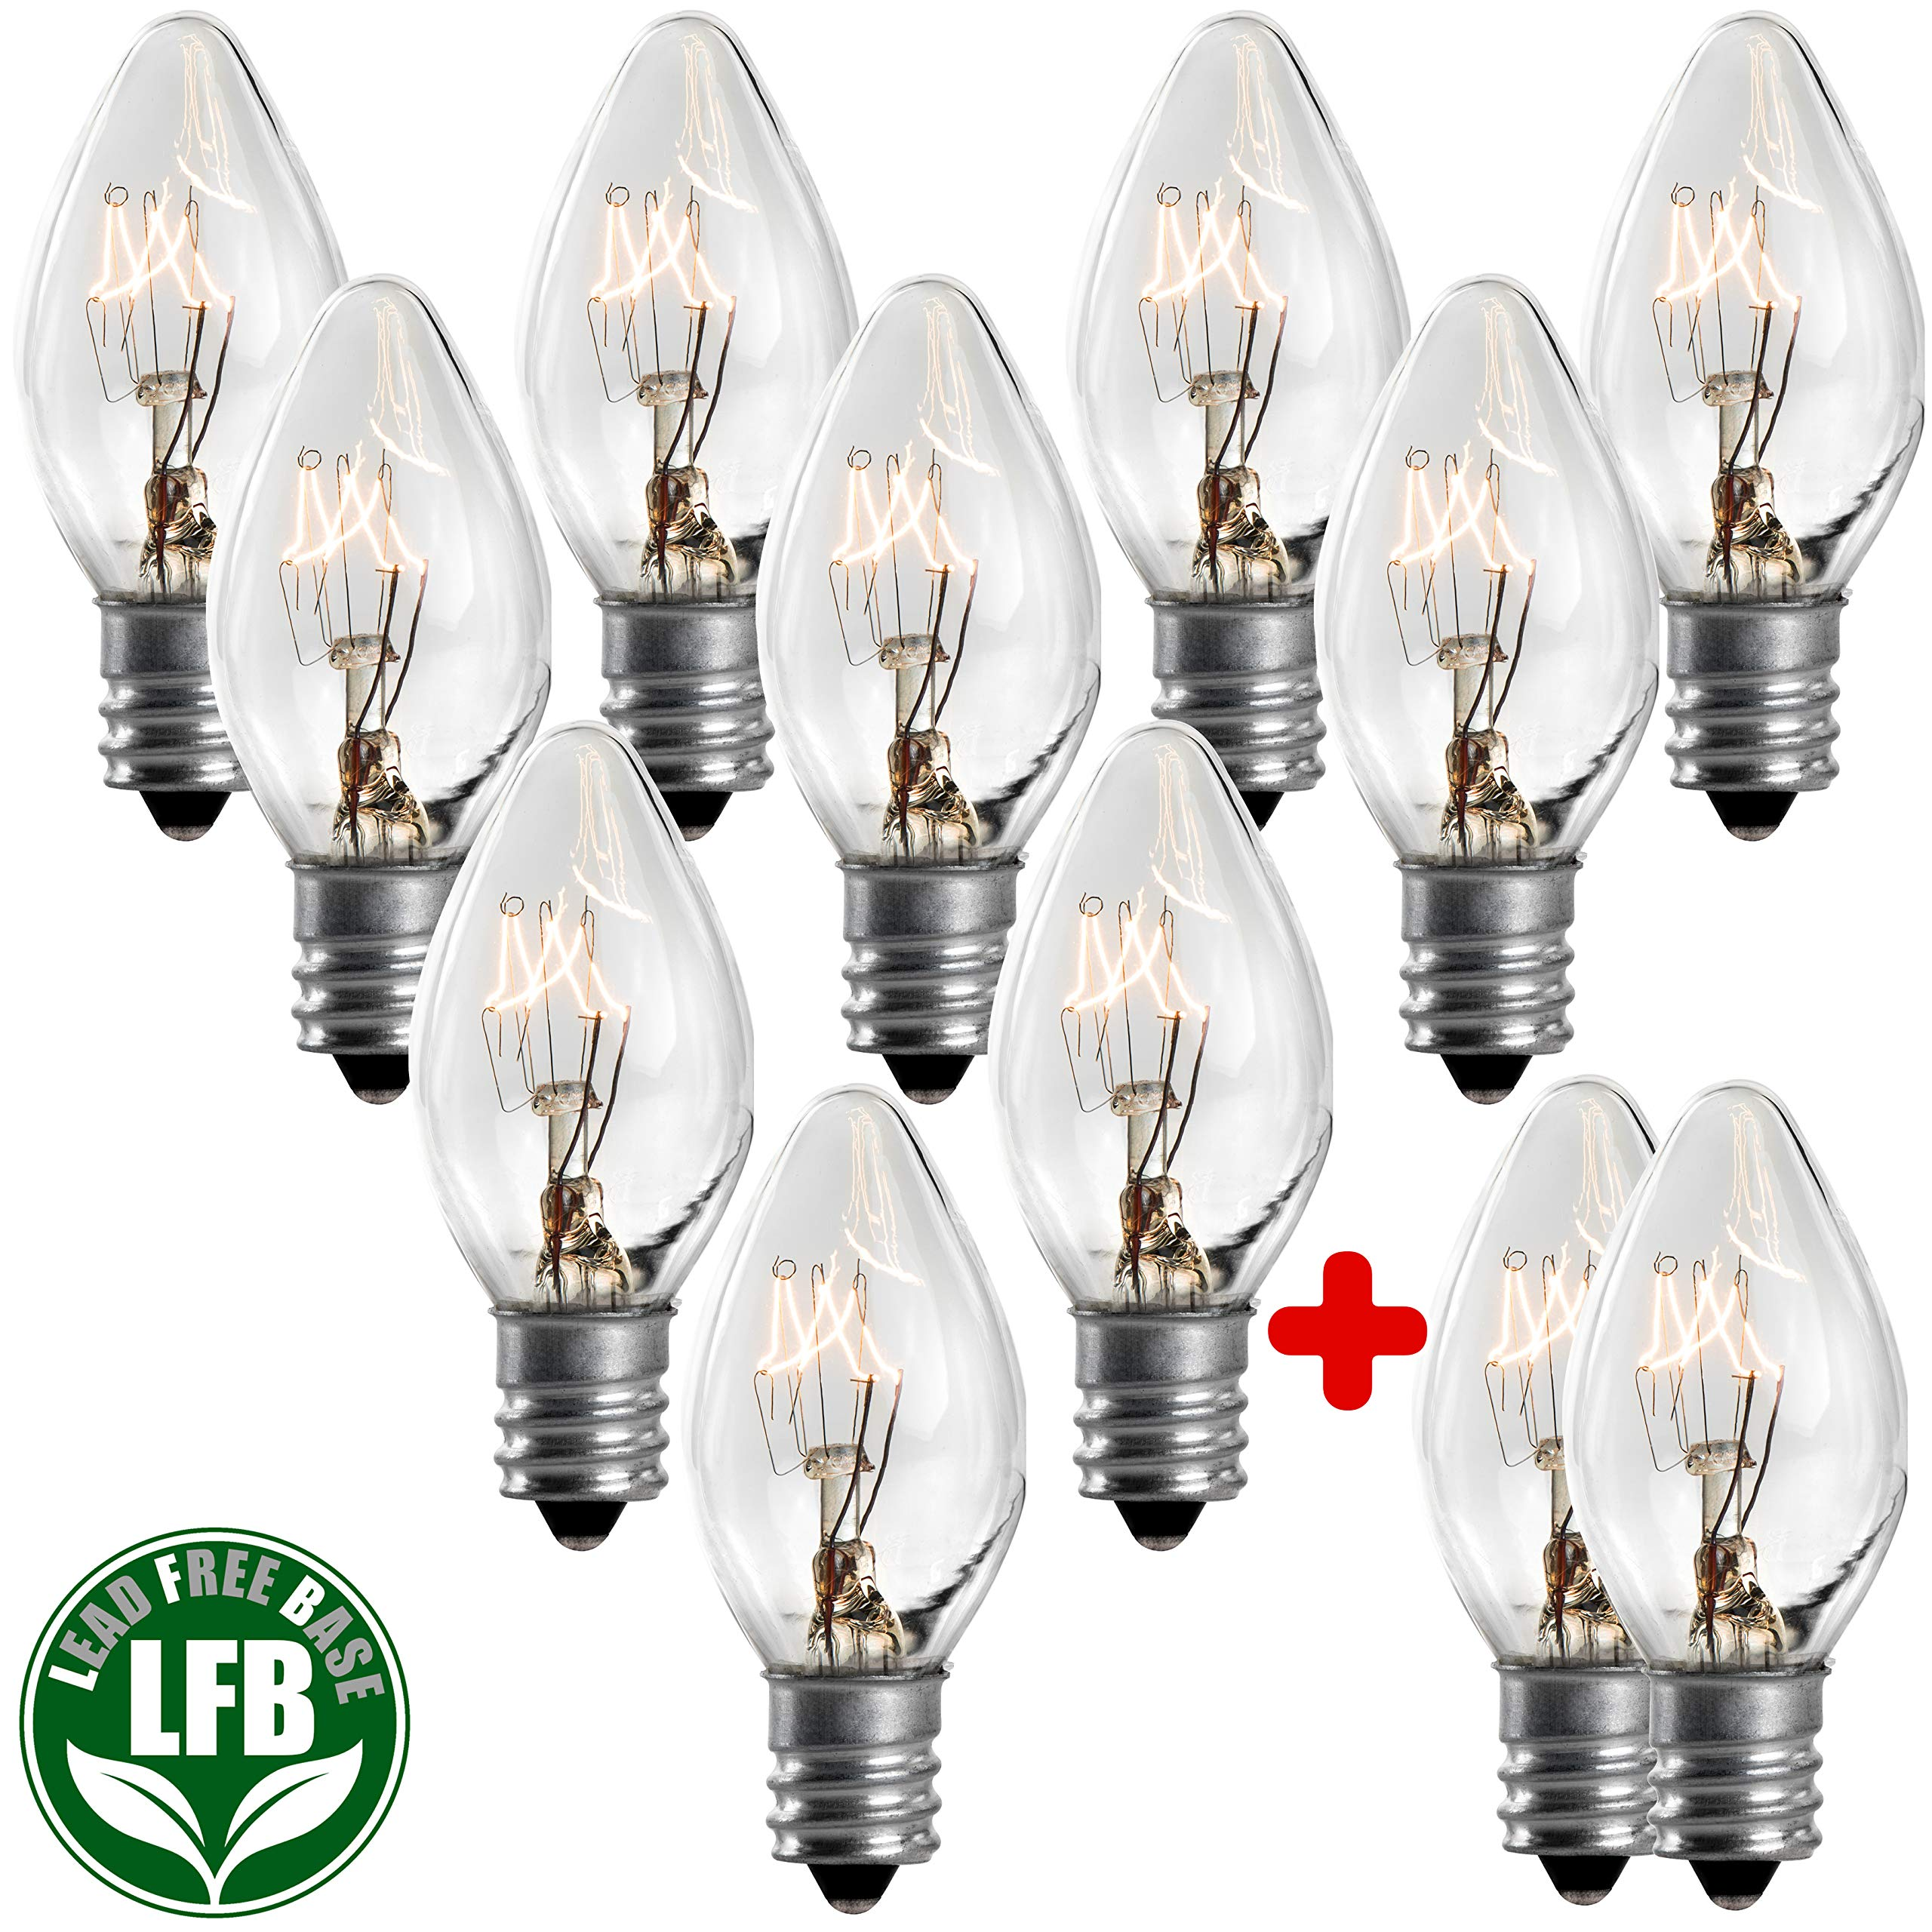 Salt Rock Lamp Bulb 10 Pack + 2 FREE 15 Watt Replacement Bulbs for Himalayan Salt Lamps & Baskets, Chandeliers, Candle & Wax Warmers, Night Lights. Incandescent E12 Socket with Candelabra Base, Clear